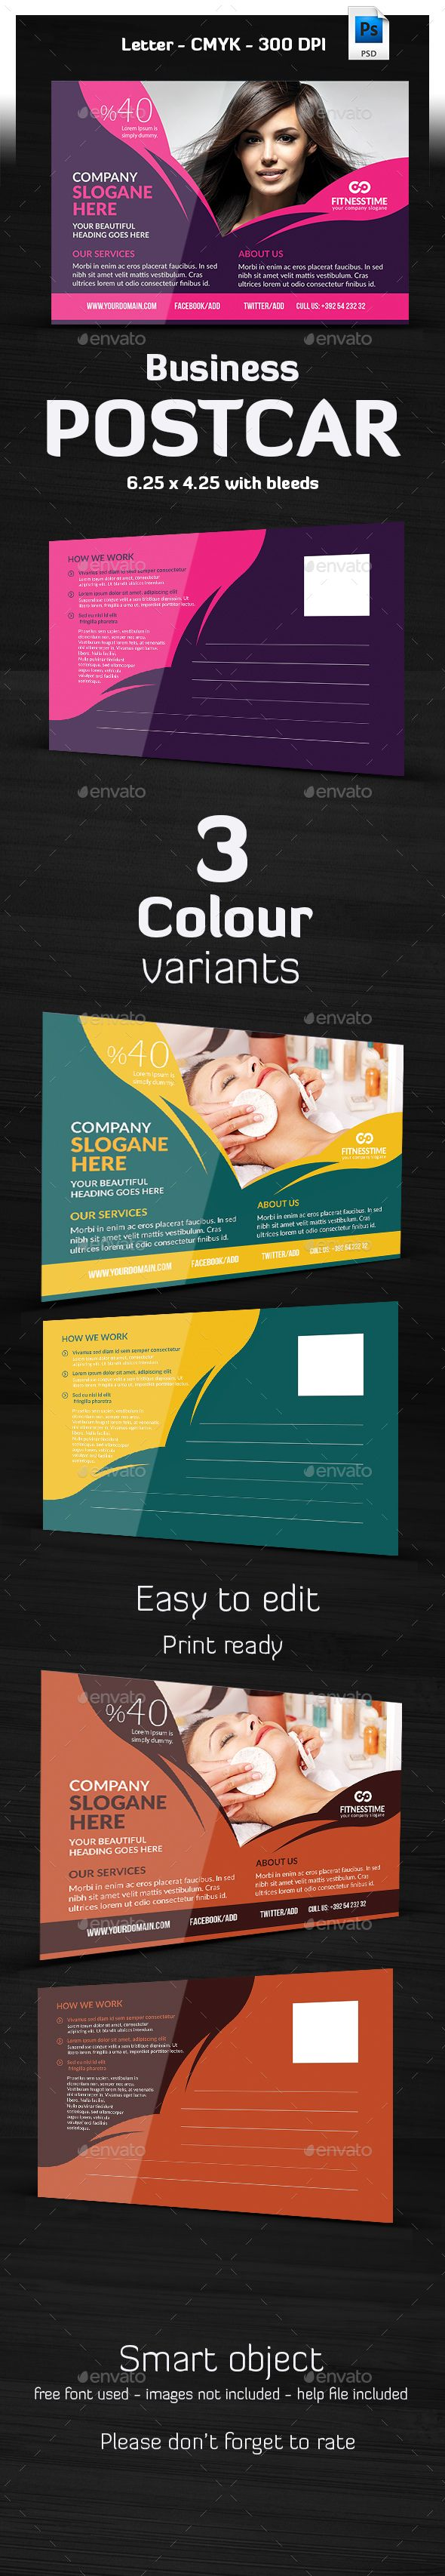 Hair & Beauty Salon Postcard Template — Photoshop PSD #snow #joy ...